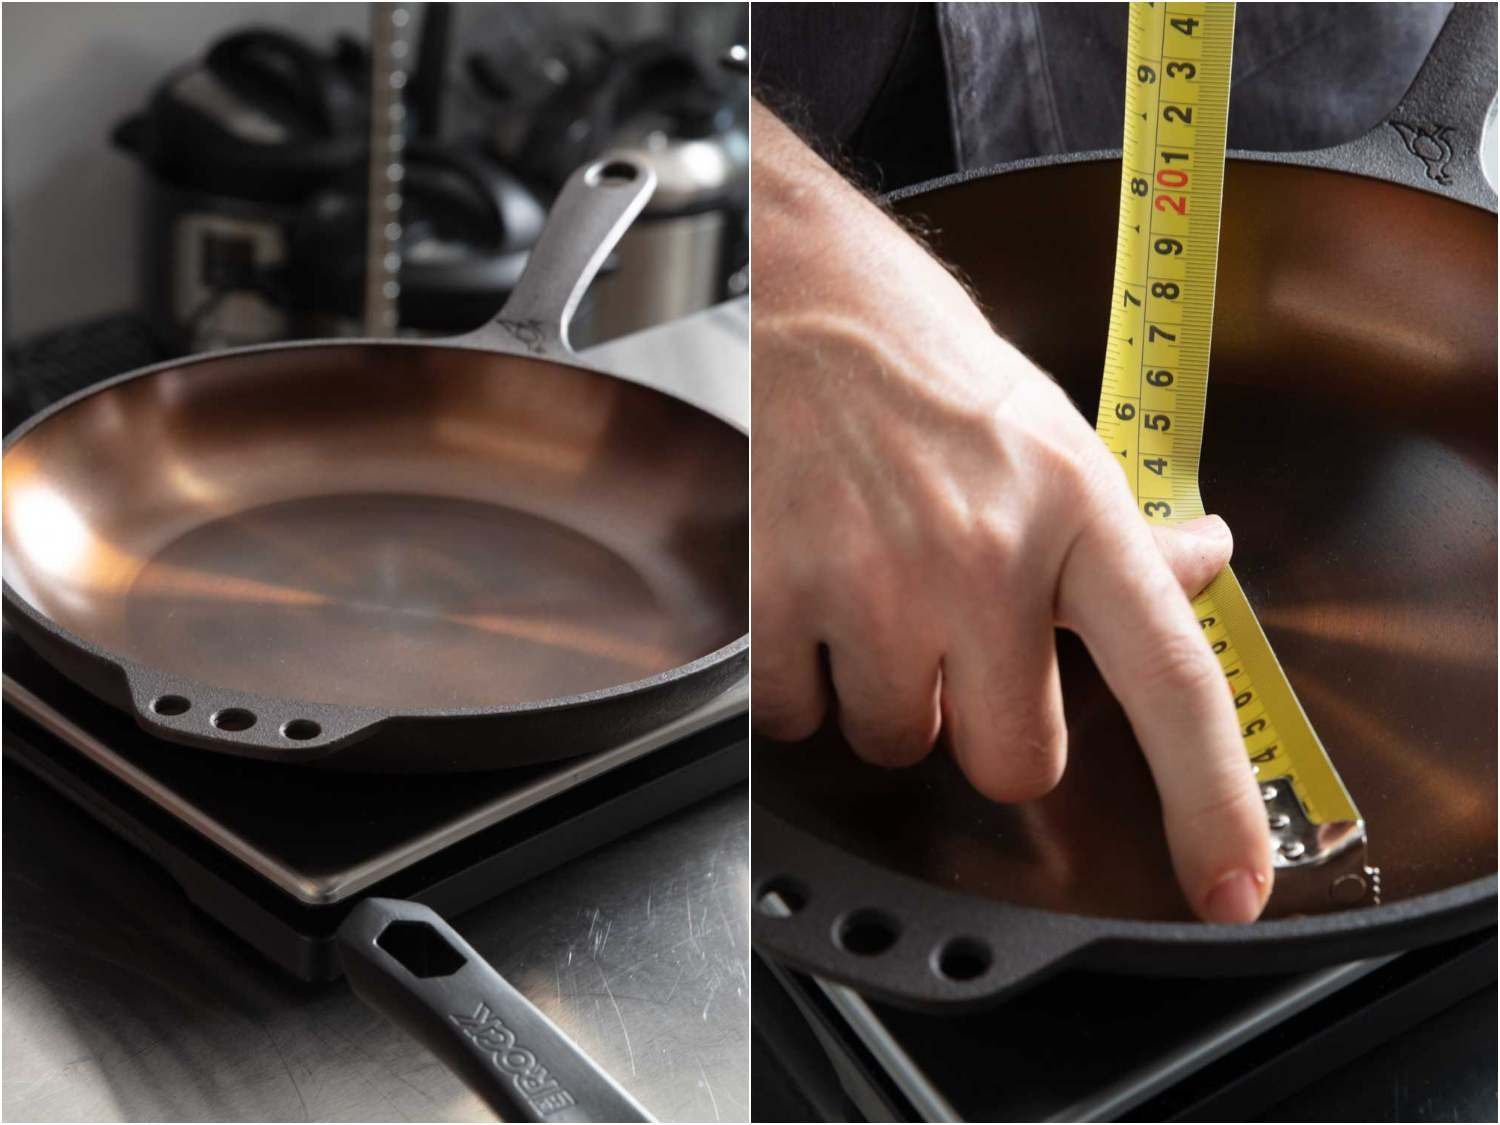 Weighing and measuring cast iron skillets